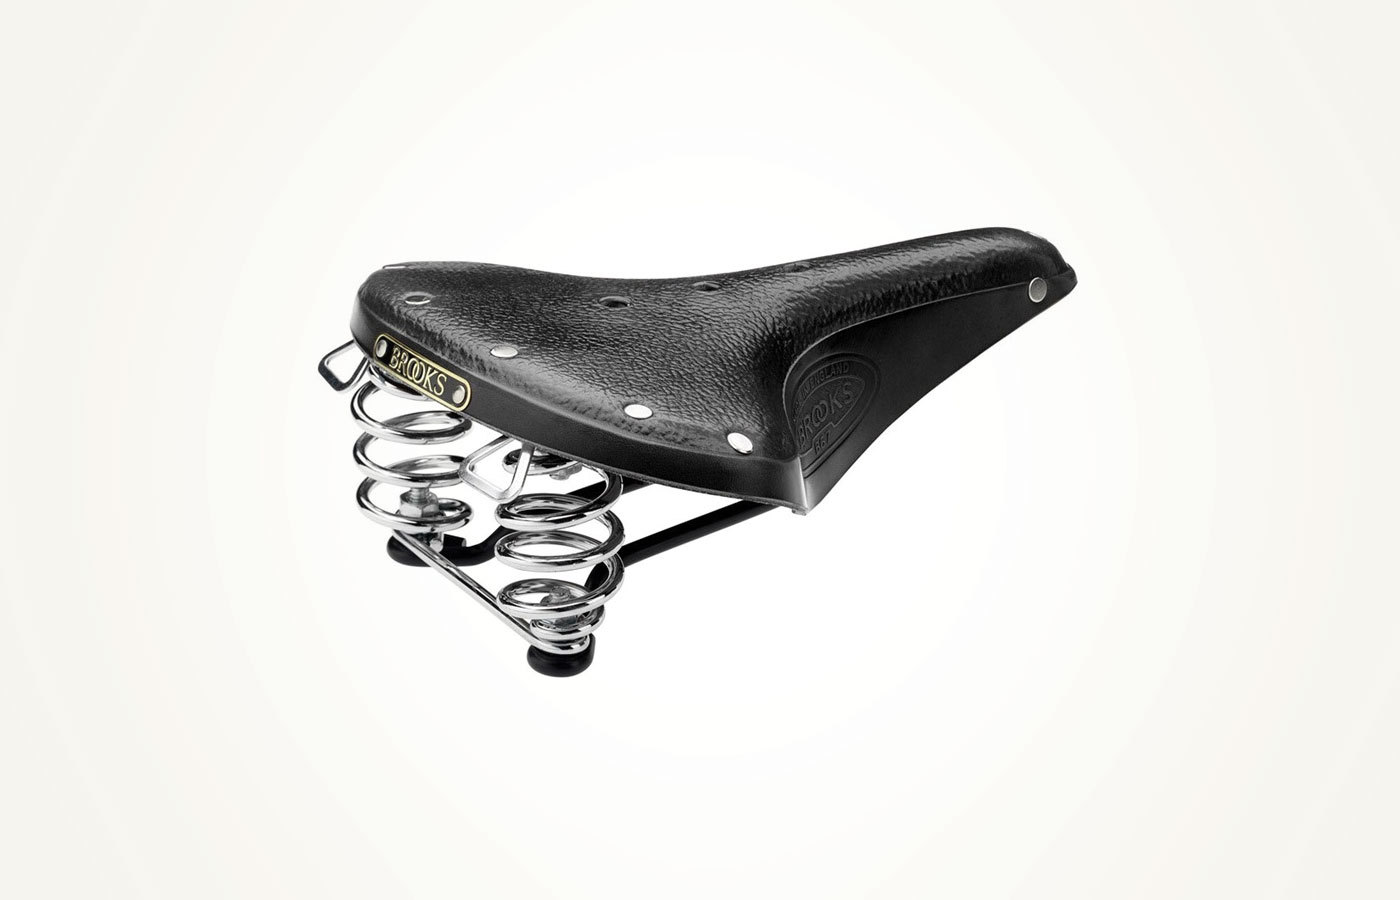 Brooks B67 'S' Ladies Saddle